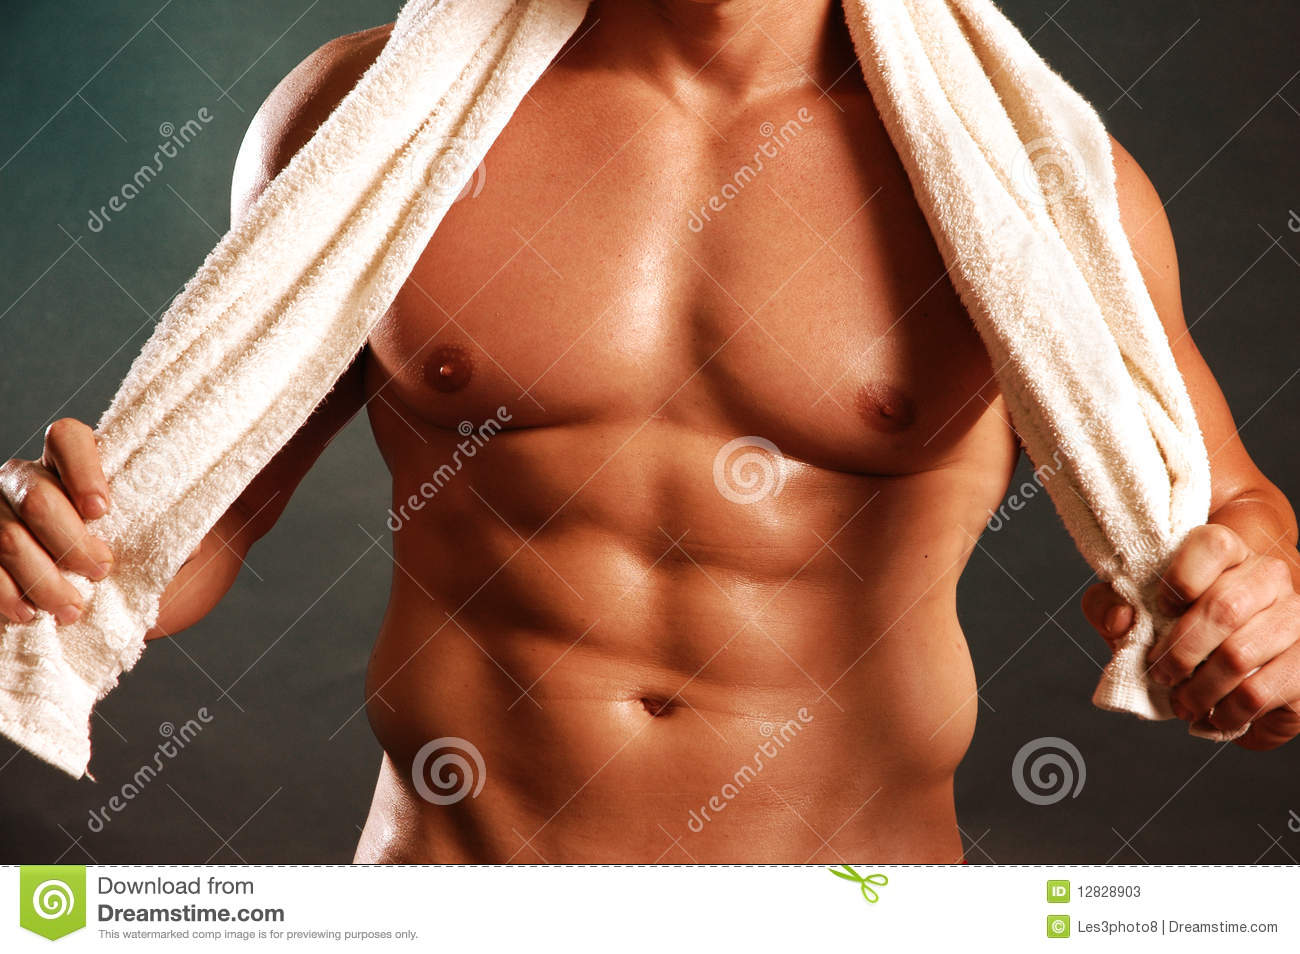 Pec and abs with towel